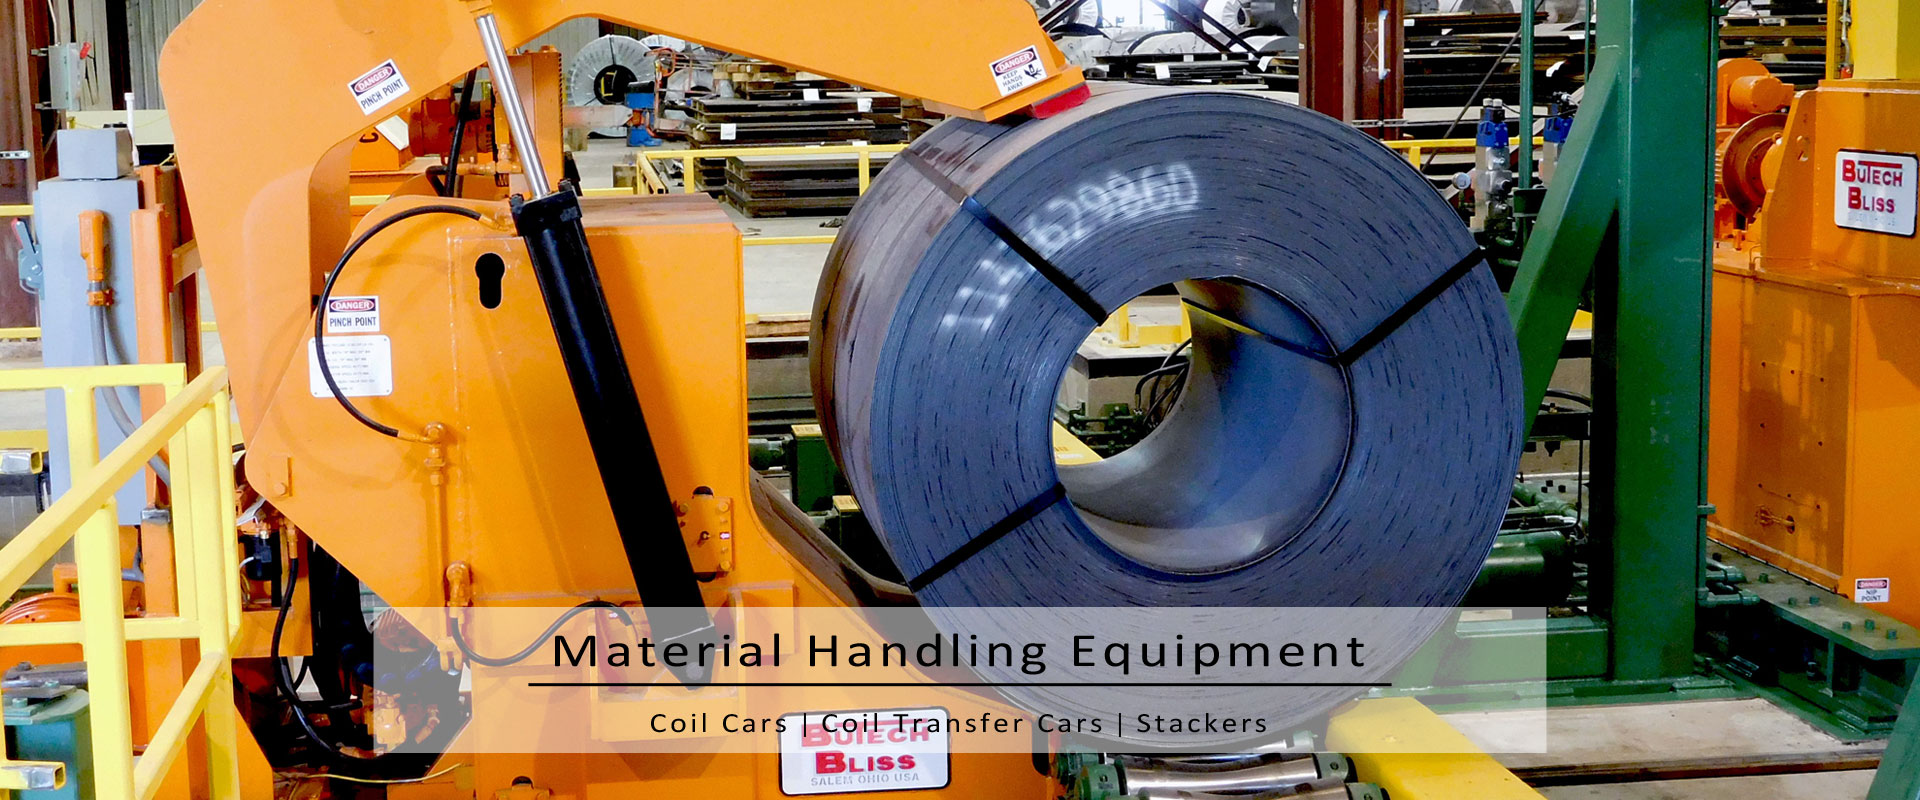 material handling equipment-coil cars-coil transfer cars-stackers